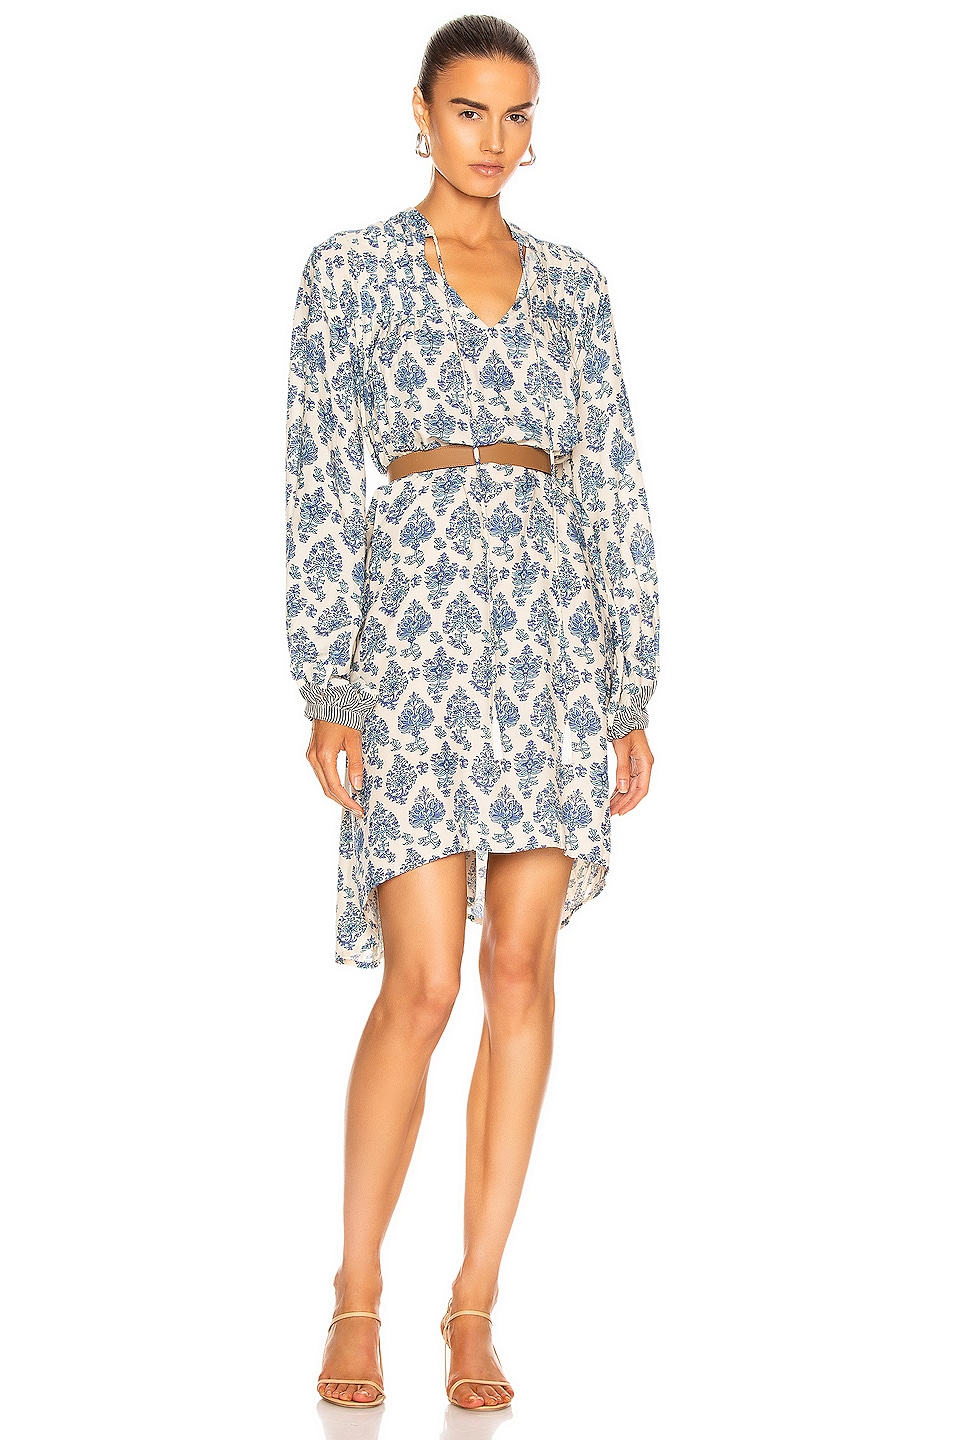 Image 1 of Natalie Martin Lizzy Short Dress in Cyprus Print Blue